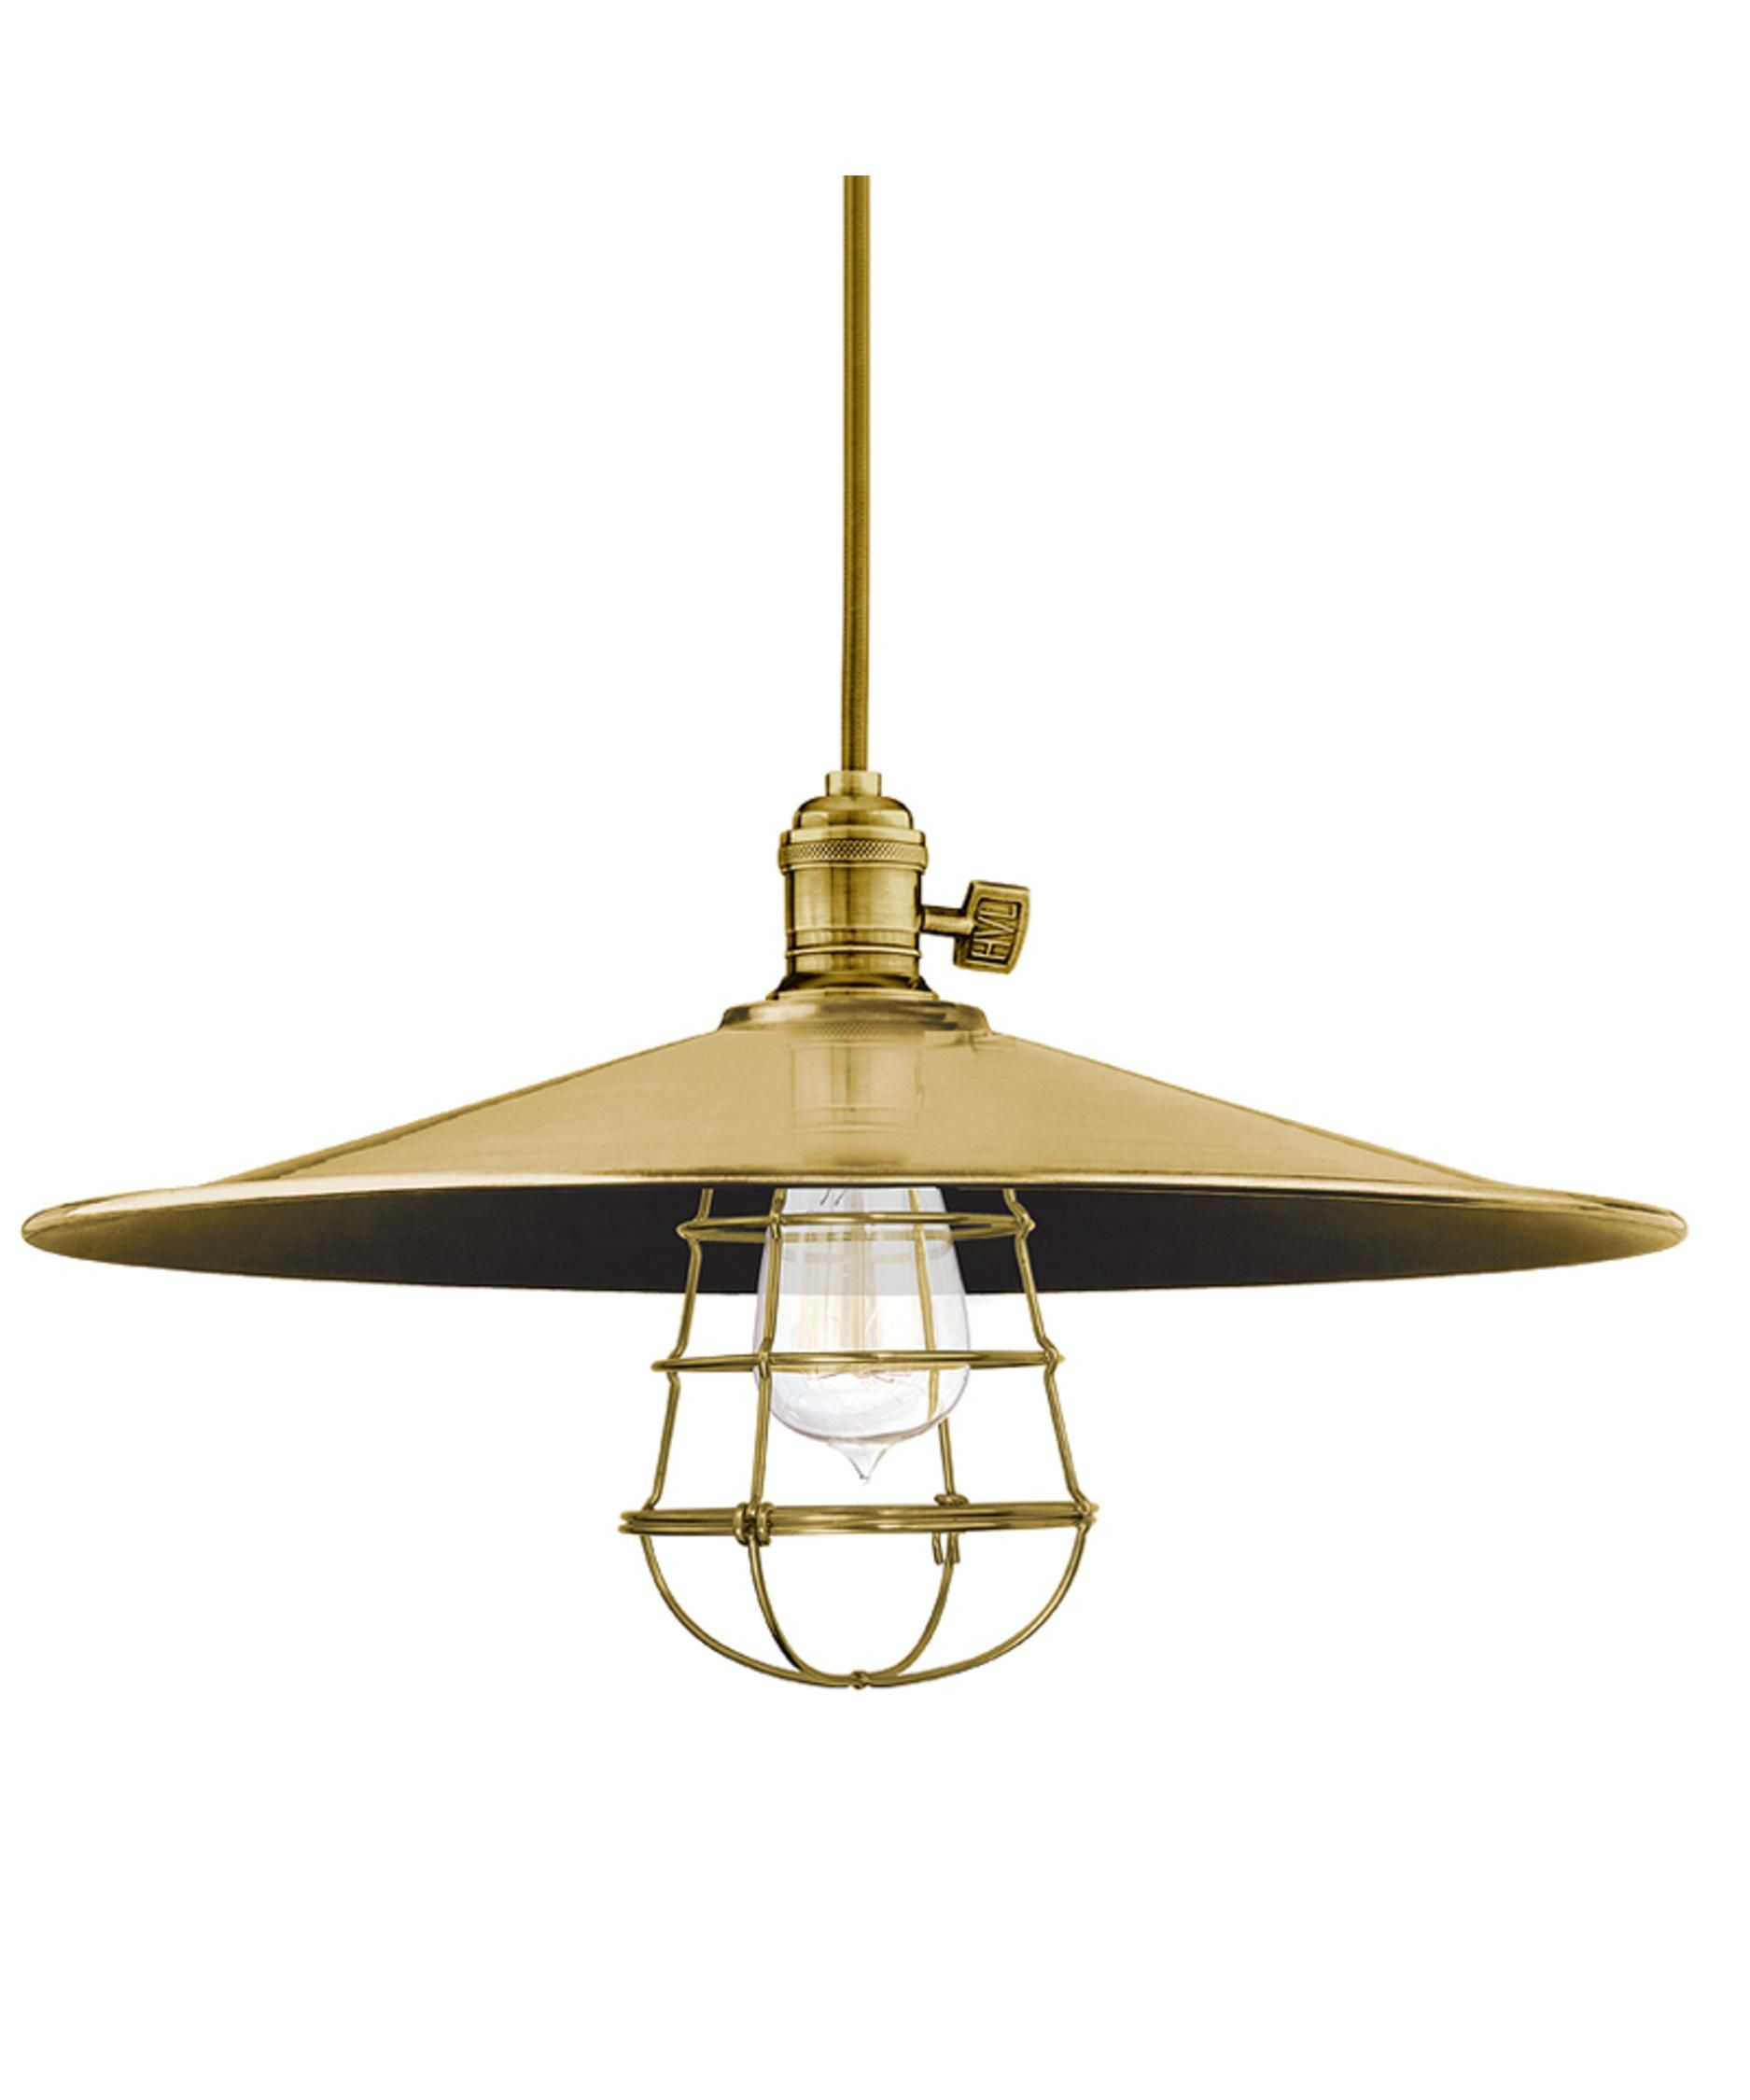 Shown In Aged Brass Finish And 165 Inch Metal Saucer With Wire Wiring Further Ceiling Lights Wires Along Guard Shade